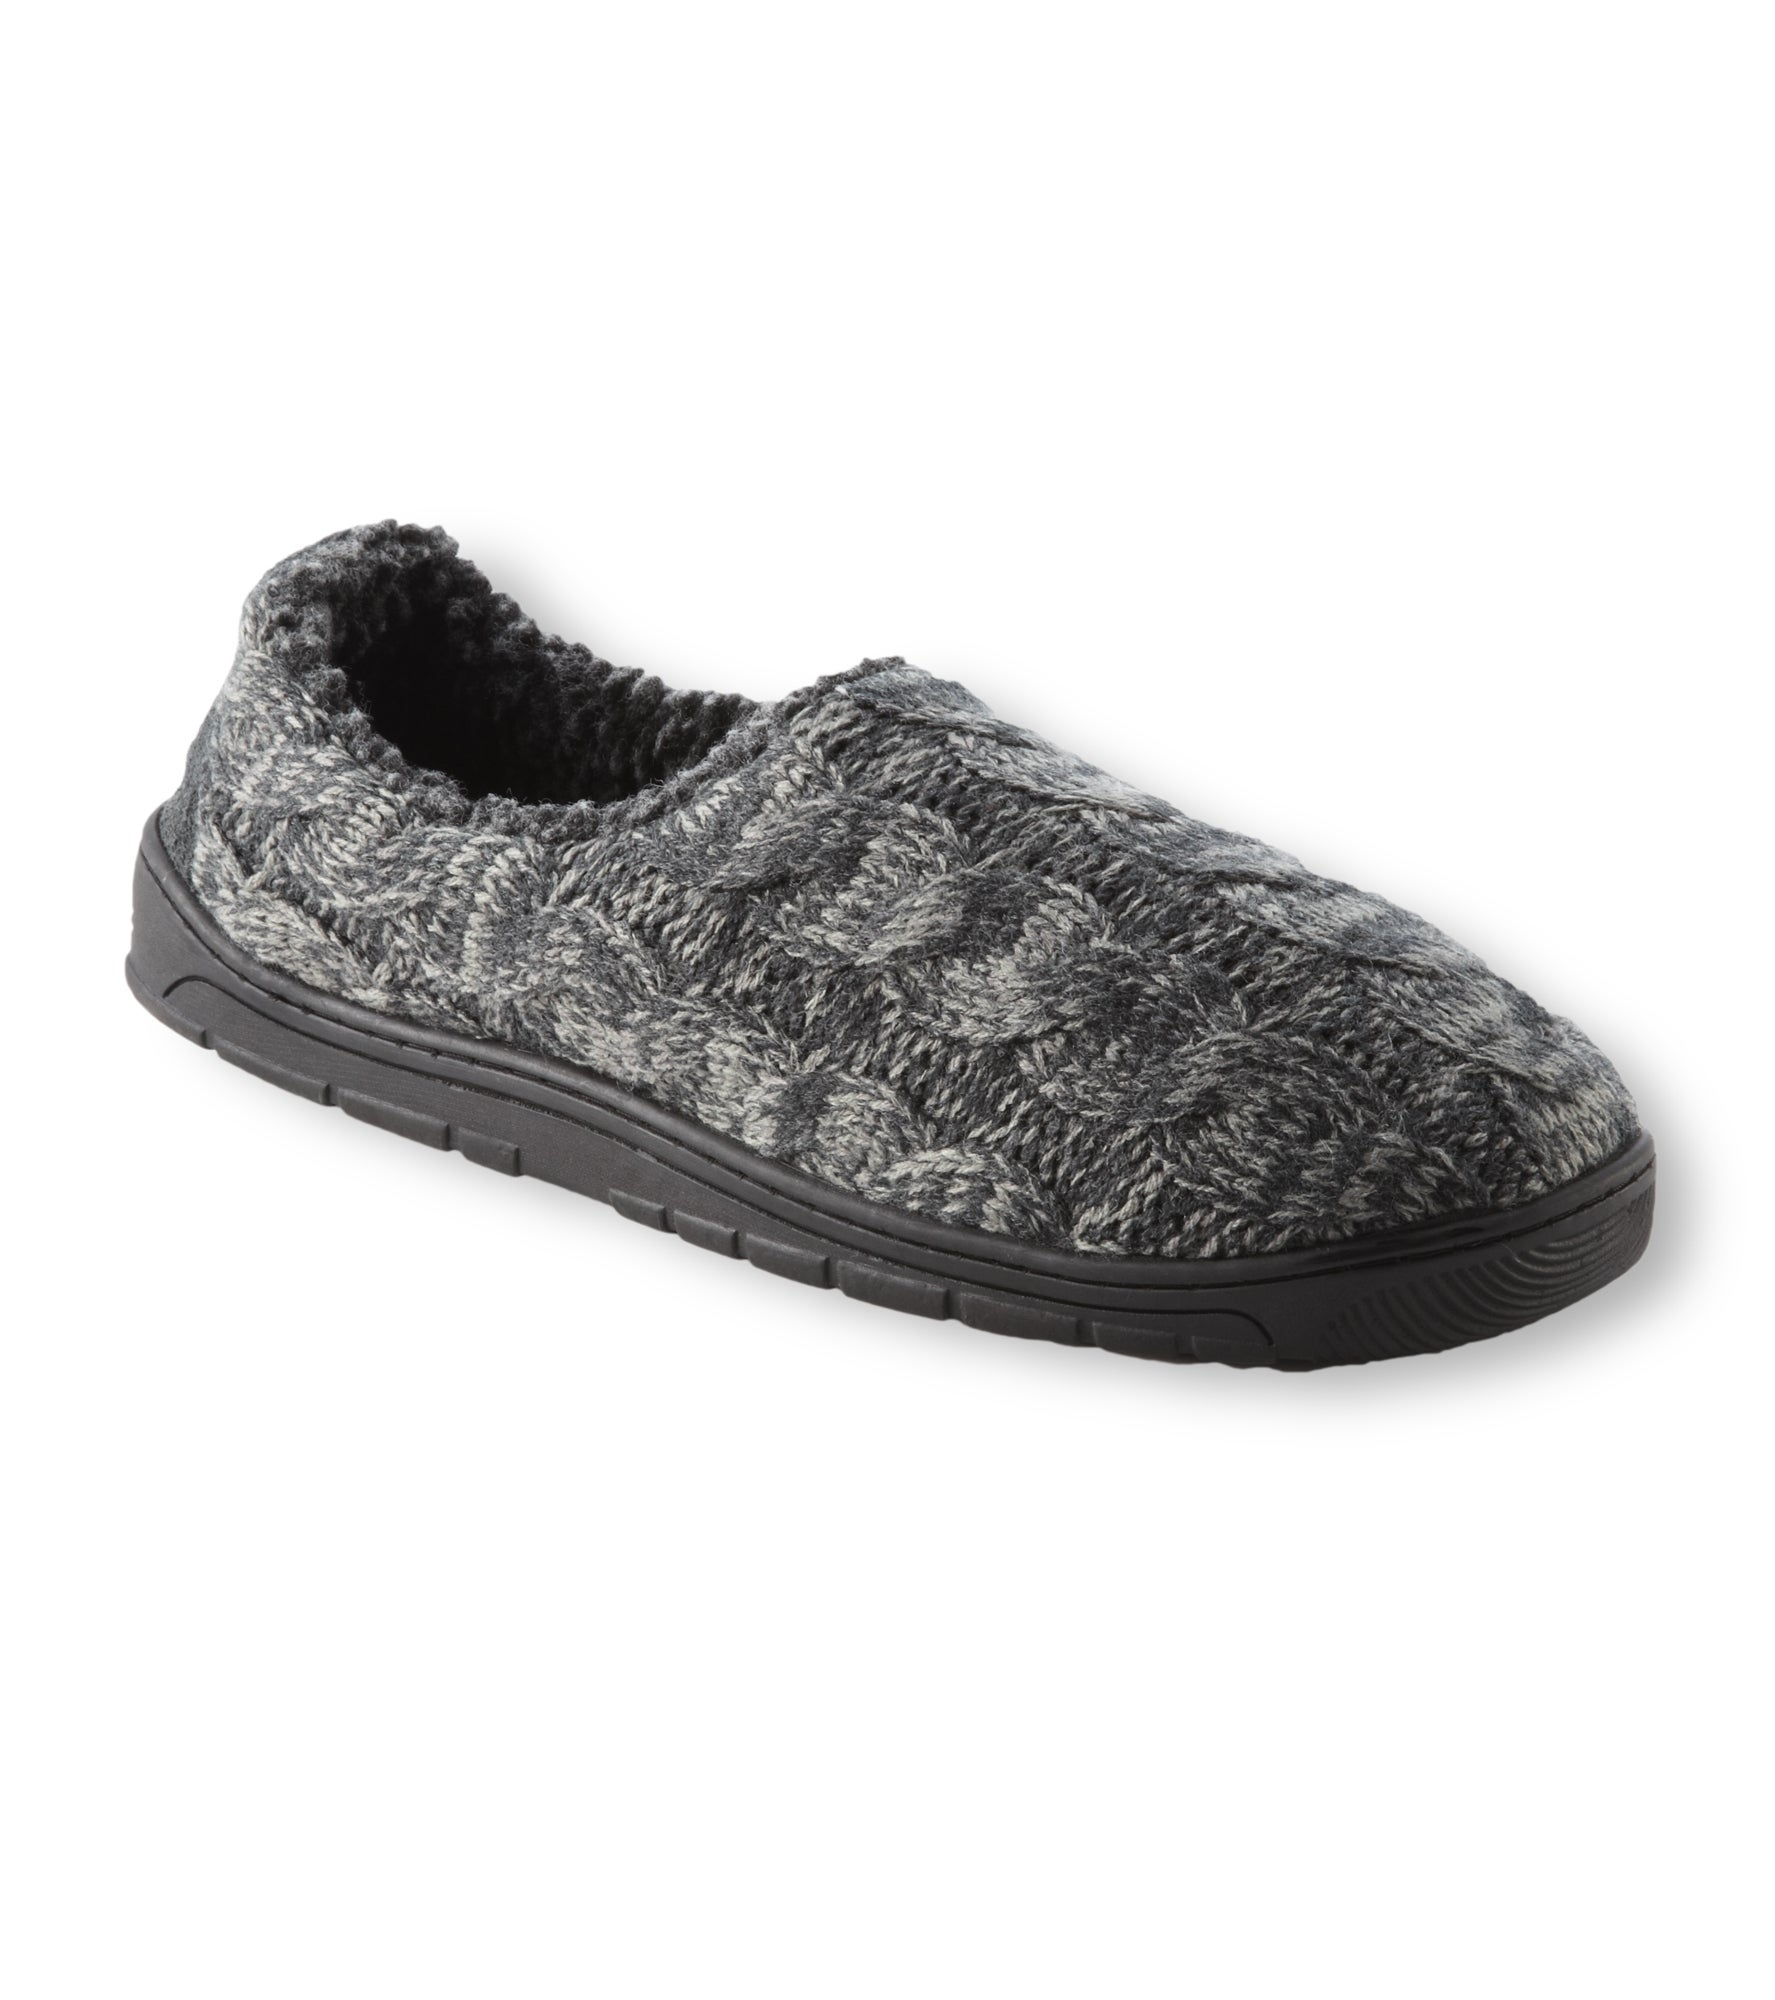 Muk Luks Men's 'Neal' Charcoal Cable Knit Foot Slippers